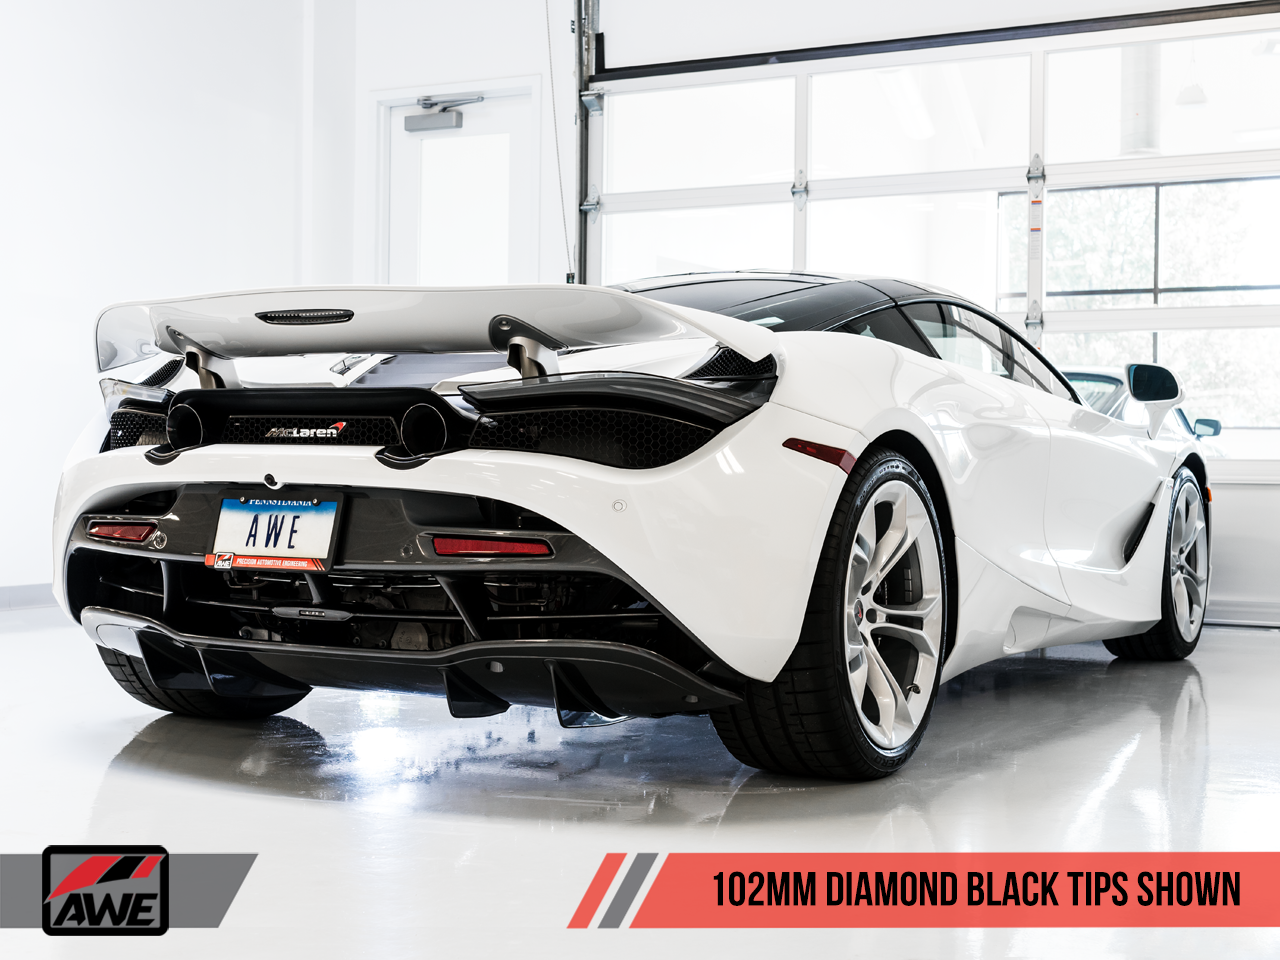 AWE Tuning Performance Exhaust for McLaren 720S - Diamond Black Tips